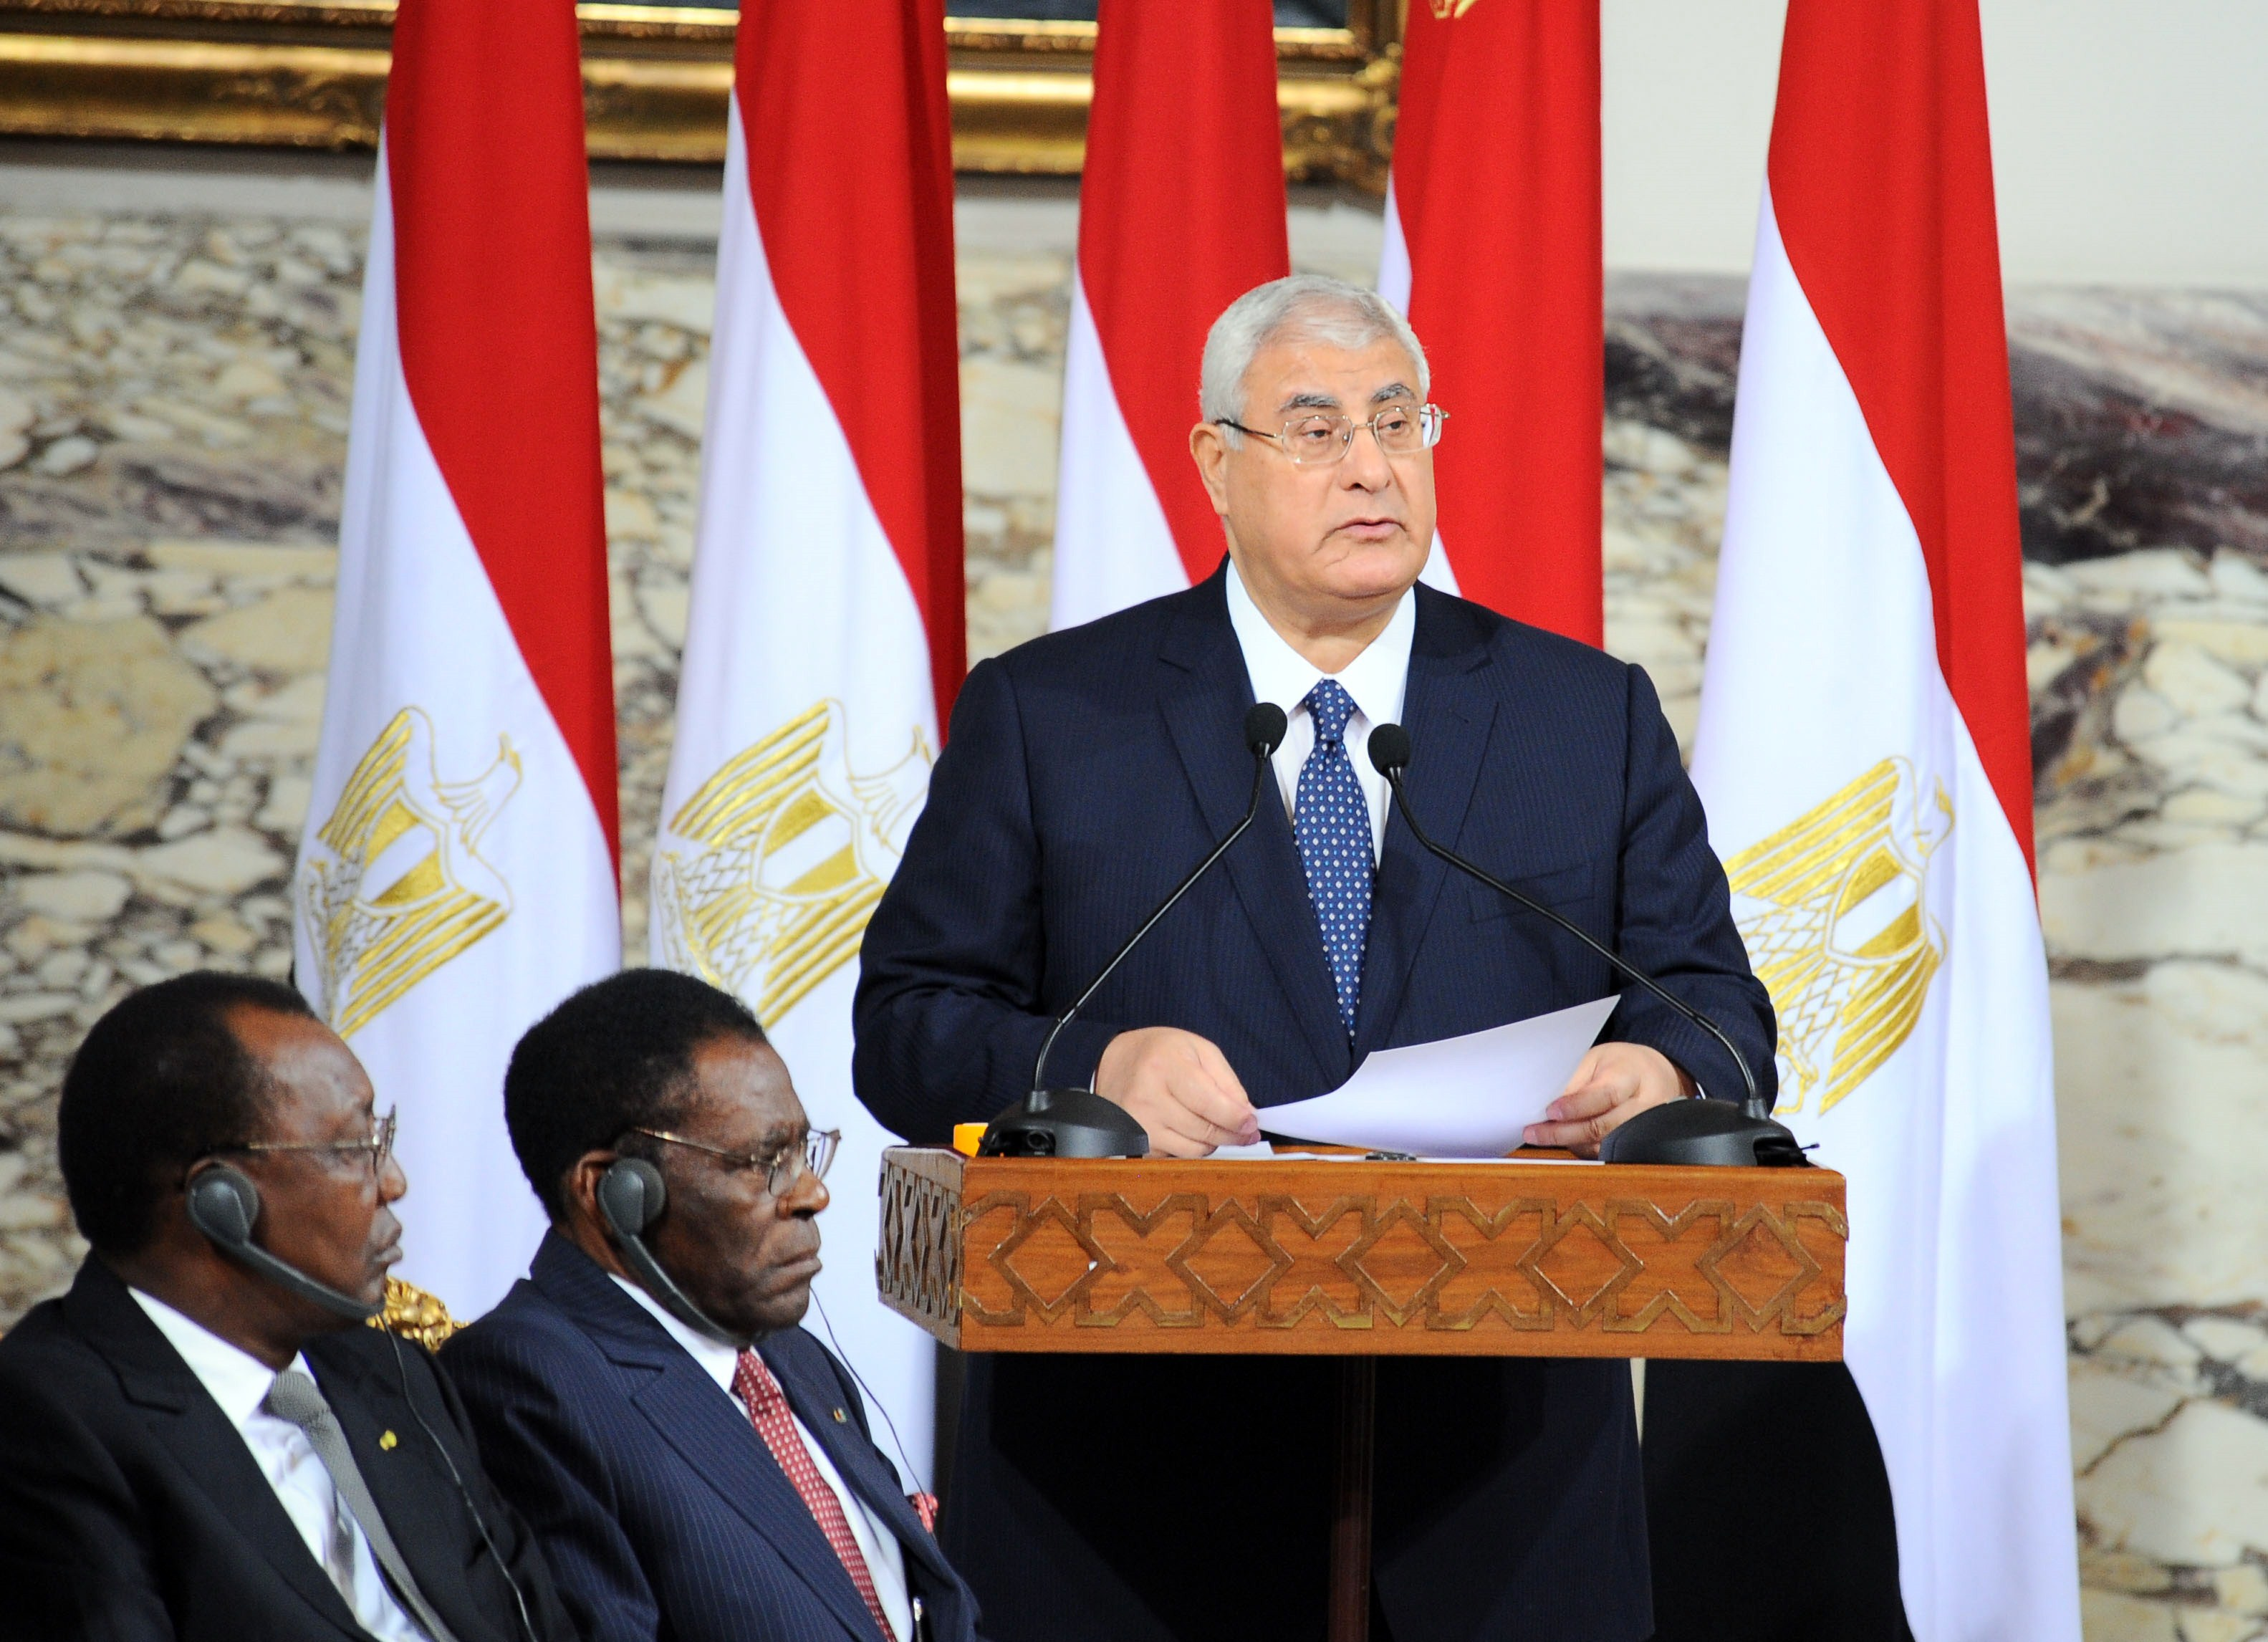 A handout picture made available on June 8, 2014 by the Egyptian presidency shows outgoing interim president Adly Mansour (C) delivering a speech after signing the handing over of power document in Cairo. Former army chief Abdel Fattah al-Sisi was sworn in as Egypt's president, formalising his de facto rule since he deposed the elected Islamist last year and crushed his supporters.   (AFP PHOTO / HO / EGYPTIAN PRESIDENCY)